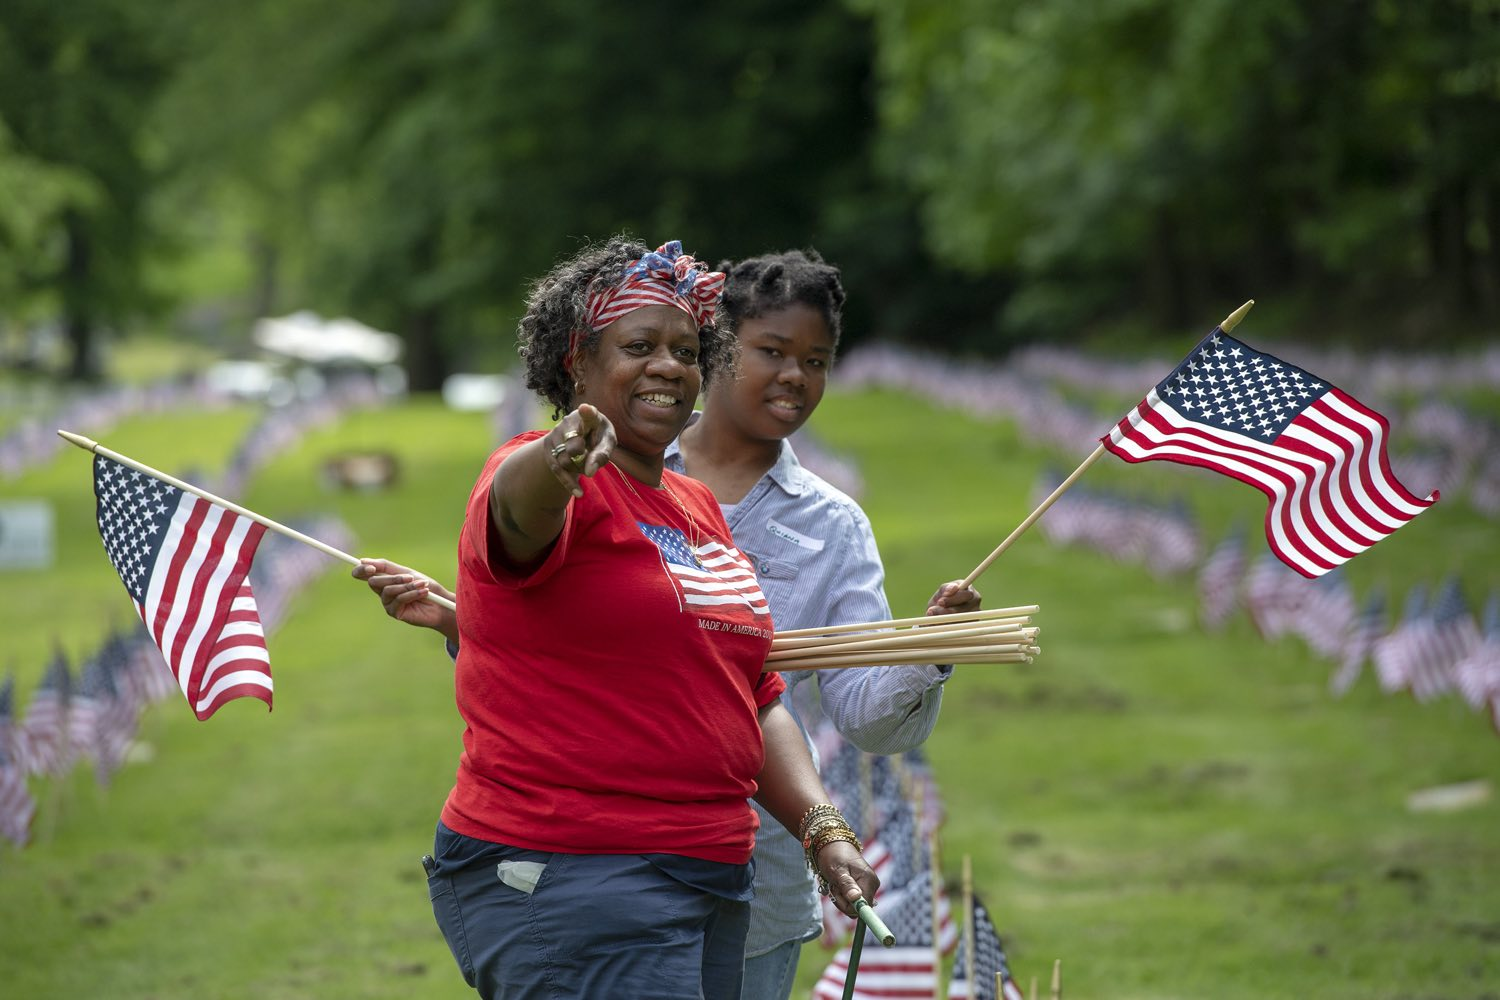 Day program counselor Rachelle Coburn points toward geese to show Quiana Reeves, 24, of the North Side, as the two place flags on the graves of military veterans with Pittsburgh Mercy Intellectual Disabilities Services on Wednesday, May 22, 2018, at Allegheny Cemetery in Lawrenceville. (Steph Chambers/Post-Gazette)